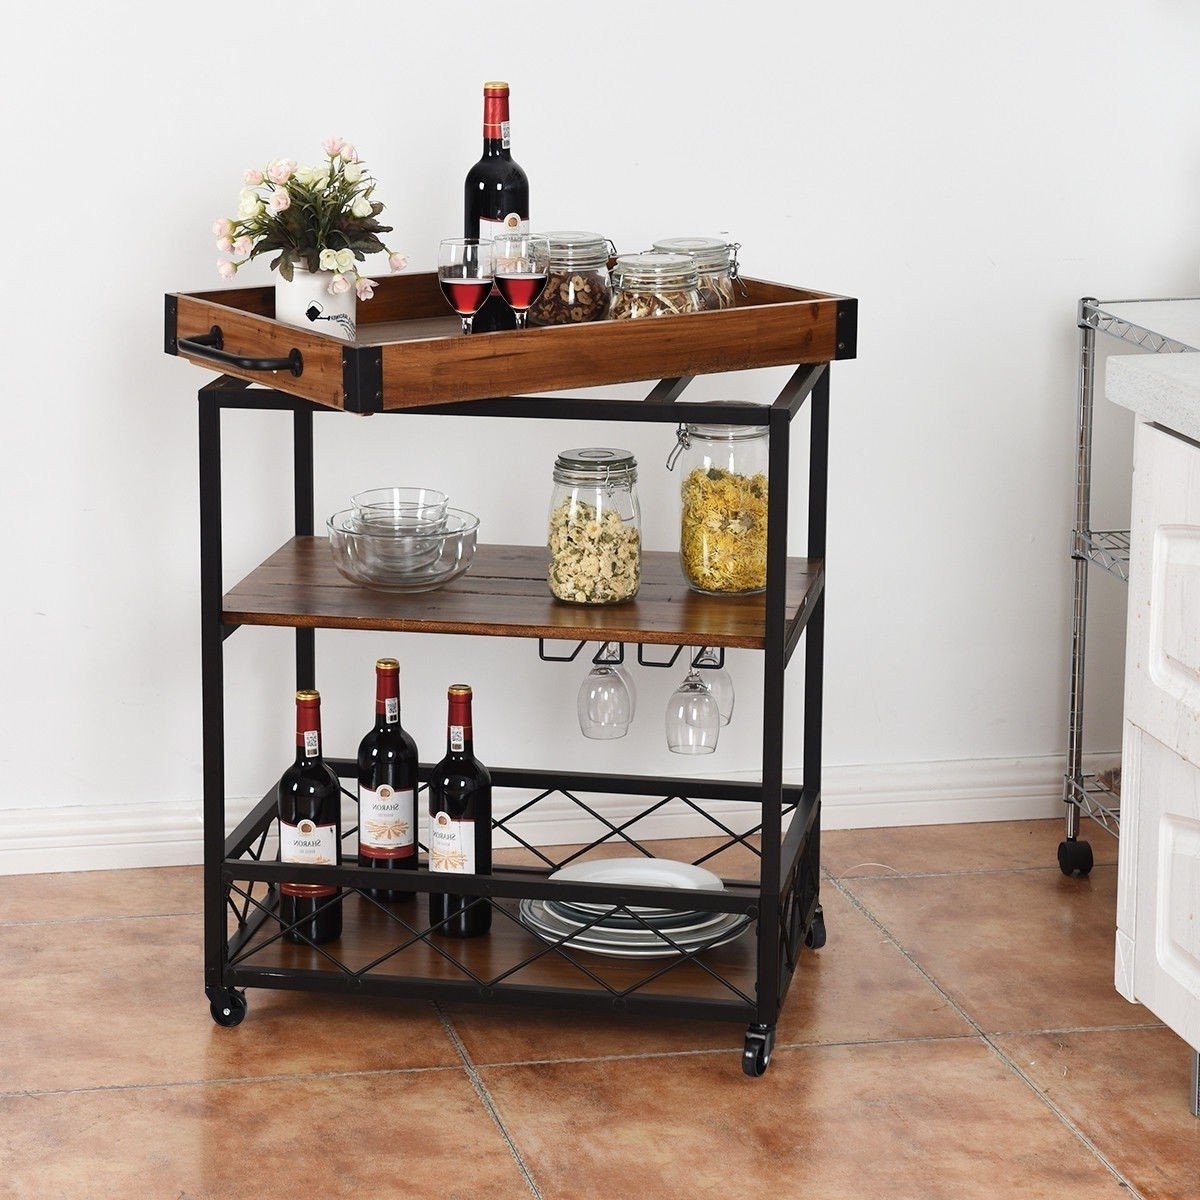 Wood Iron Kitchen Cart with Removable Tray Top and Wheels